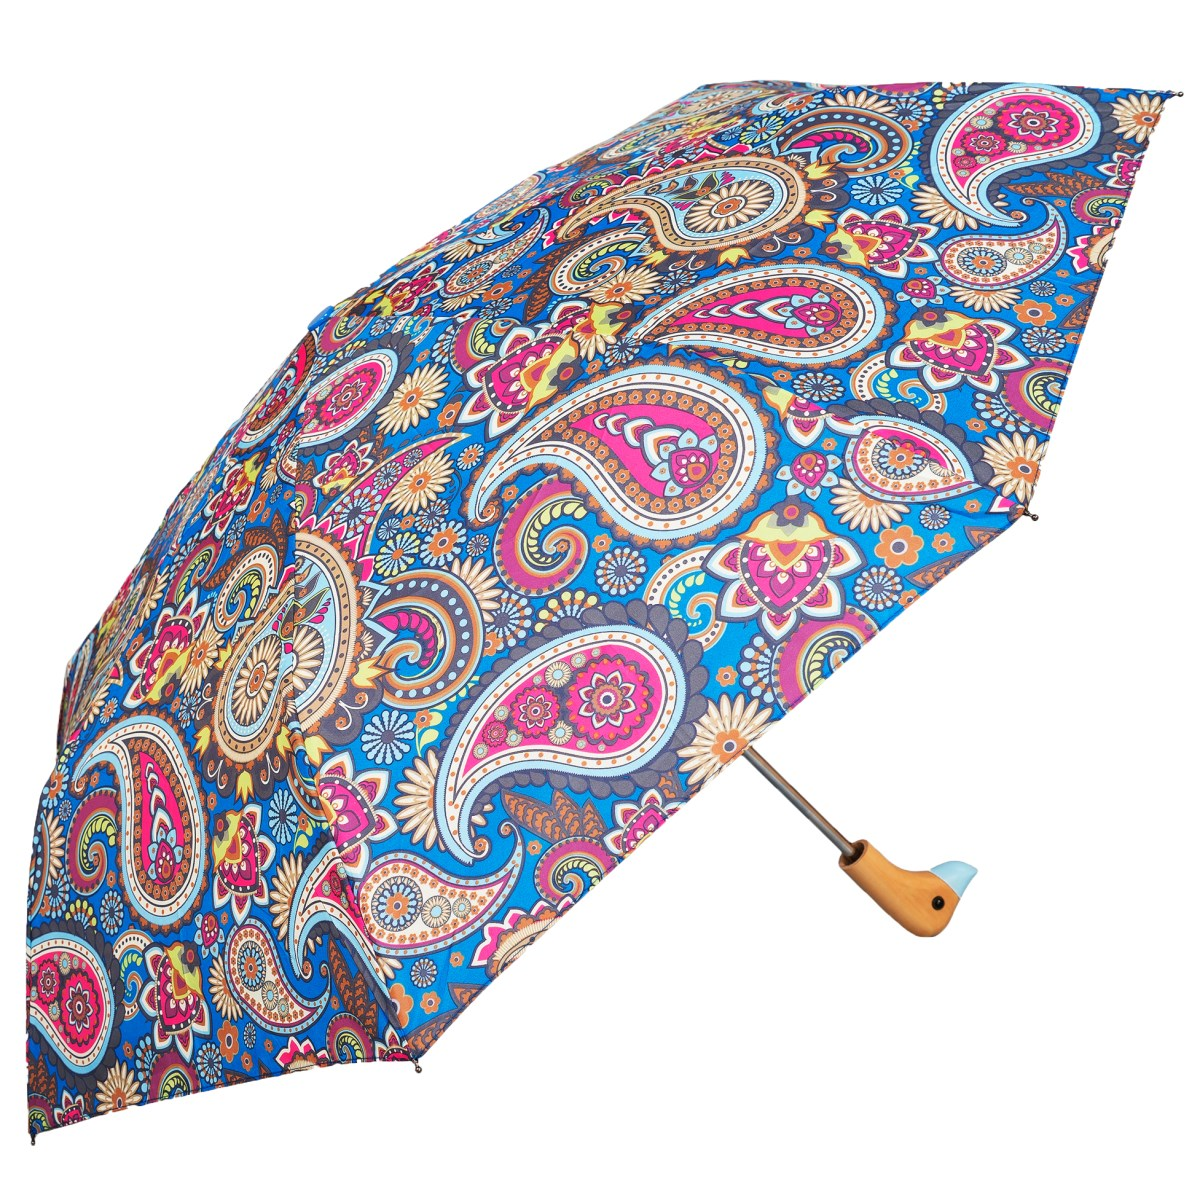 Blue Paisley Print Wooden Duck Head Handle Ladies Compact Umbrella (3489)